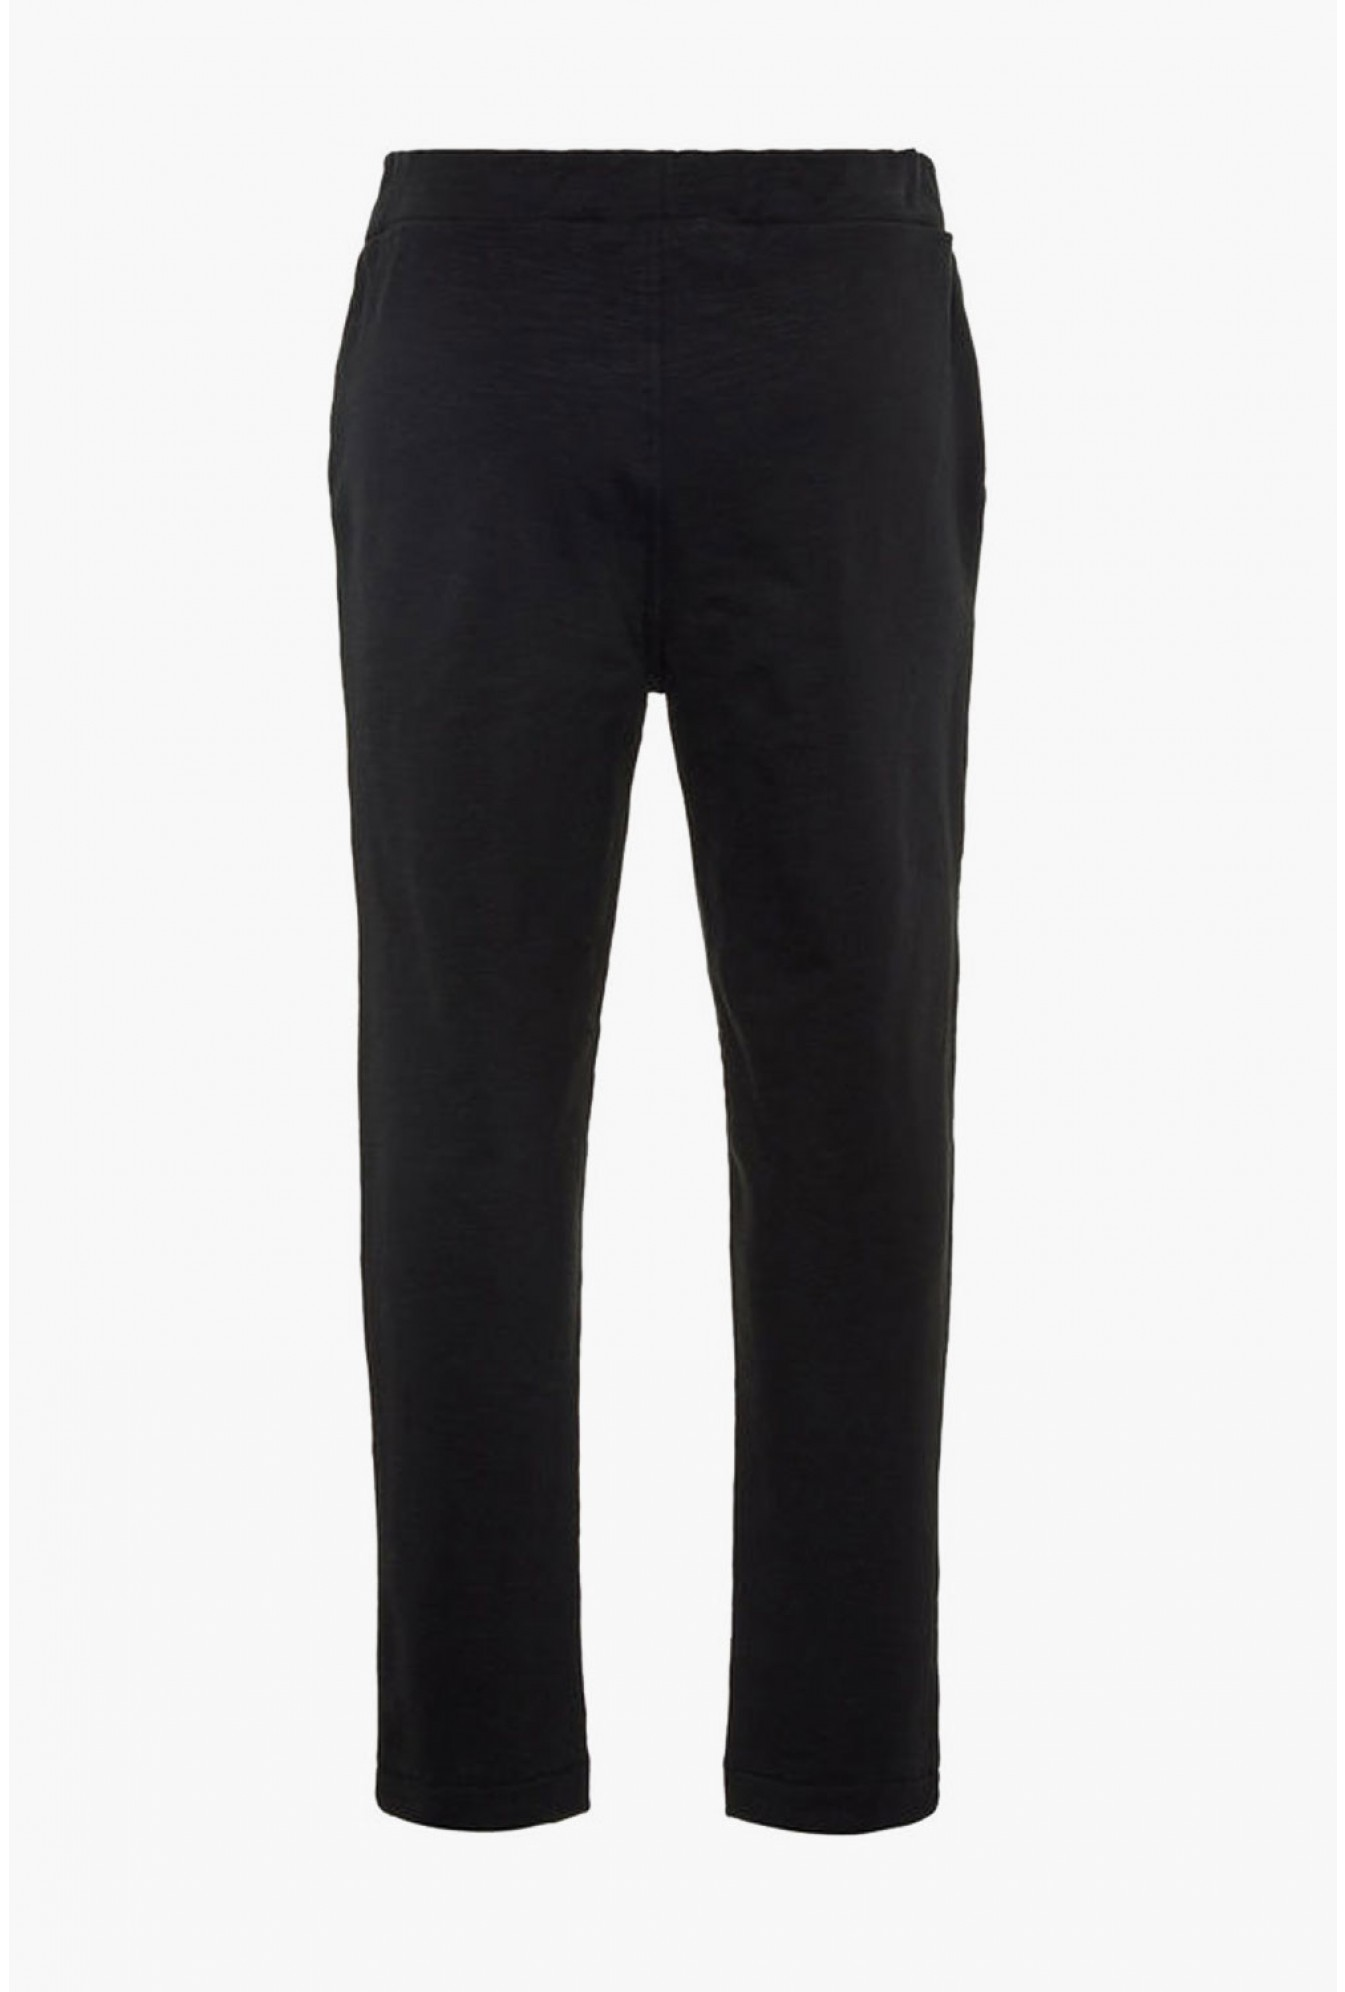 a4089afde1f6 Name It Molas Boys Sweat Pant in Black